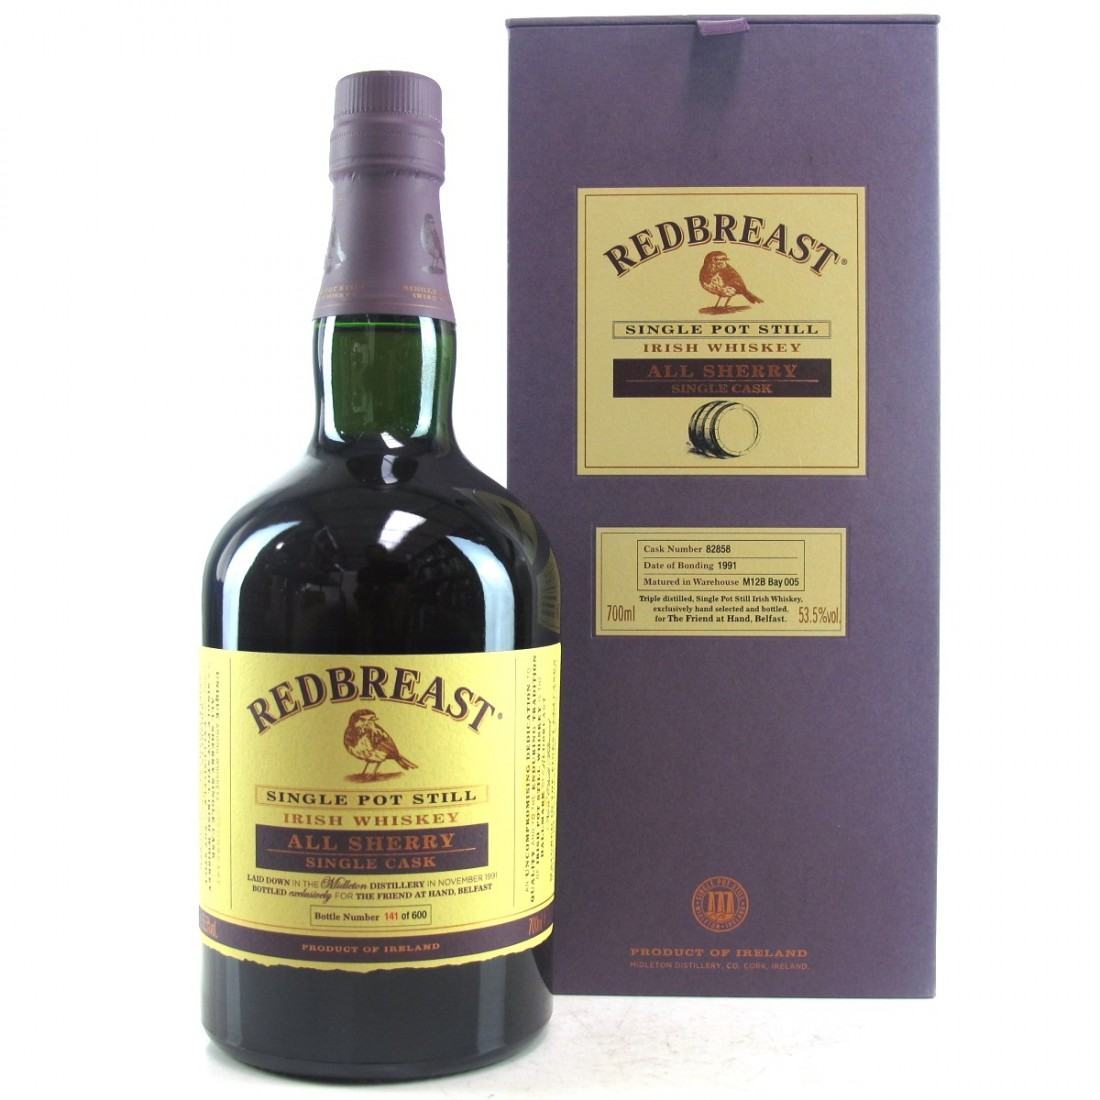 Redbreast 1991 All Sherry Single Cask #82858 / Friend at Hand Exclusive